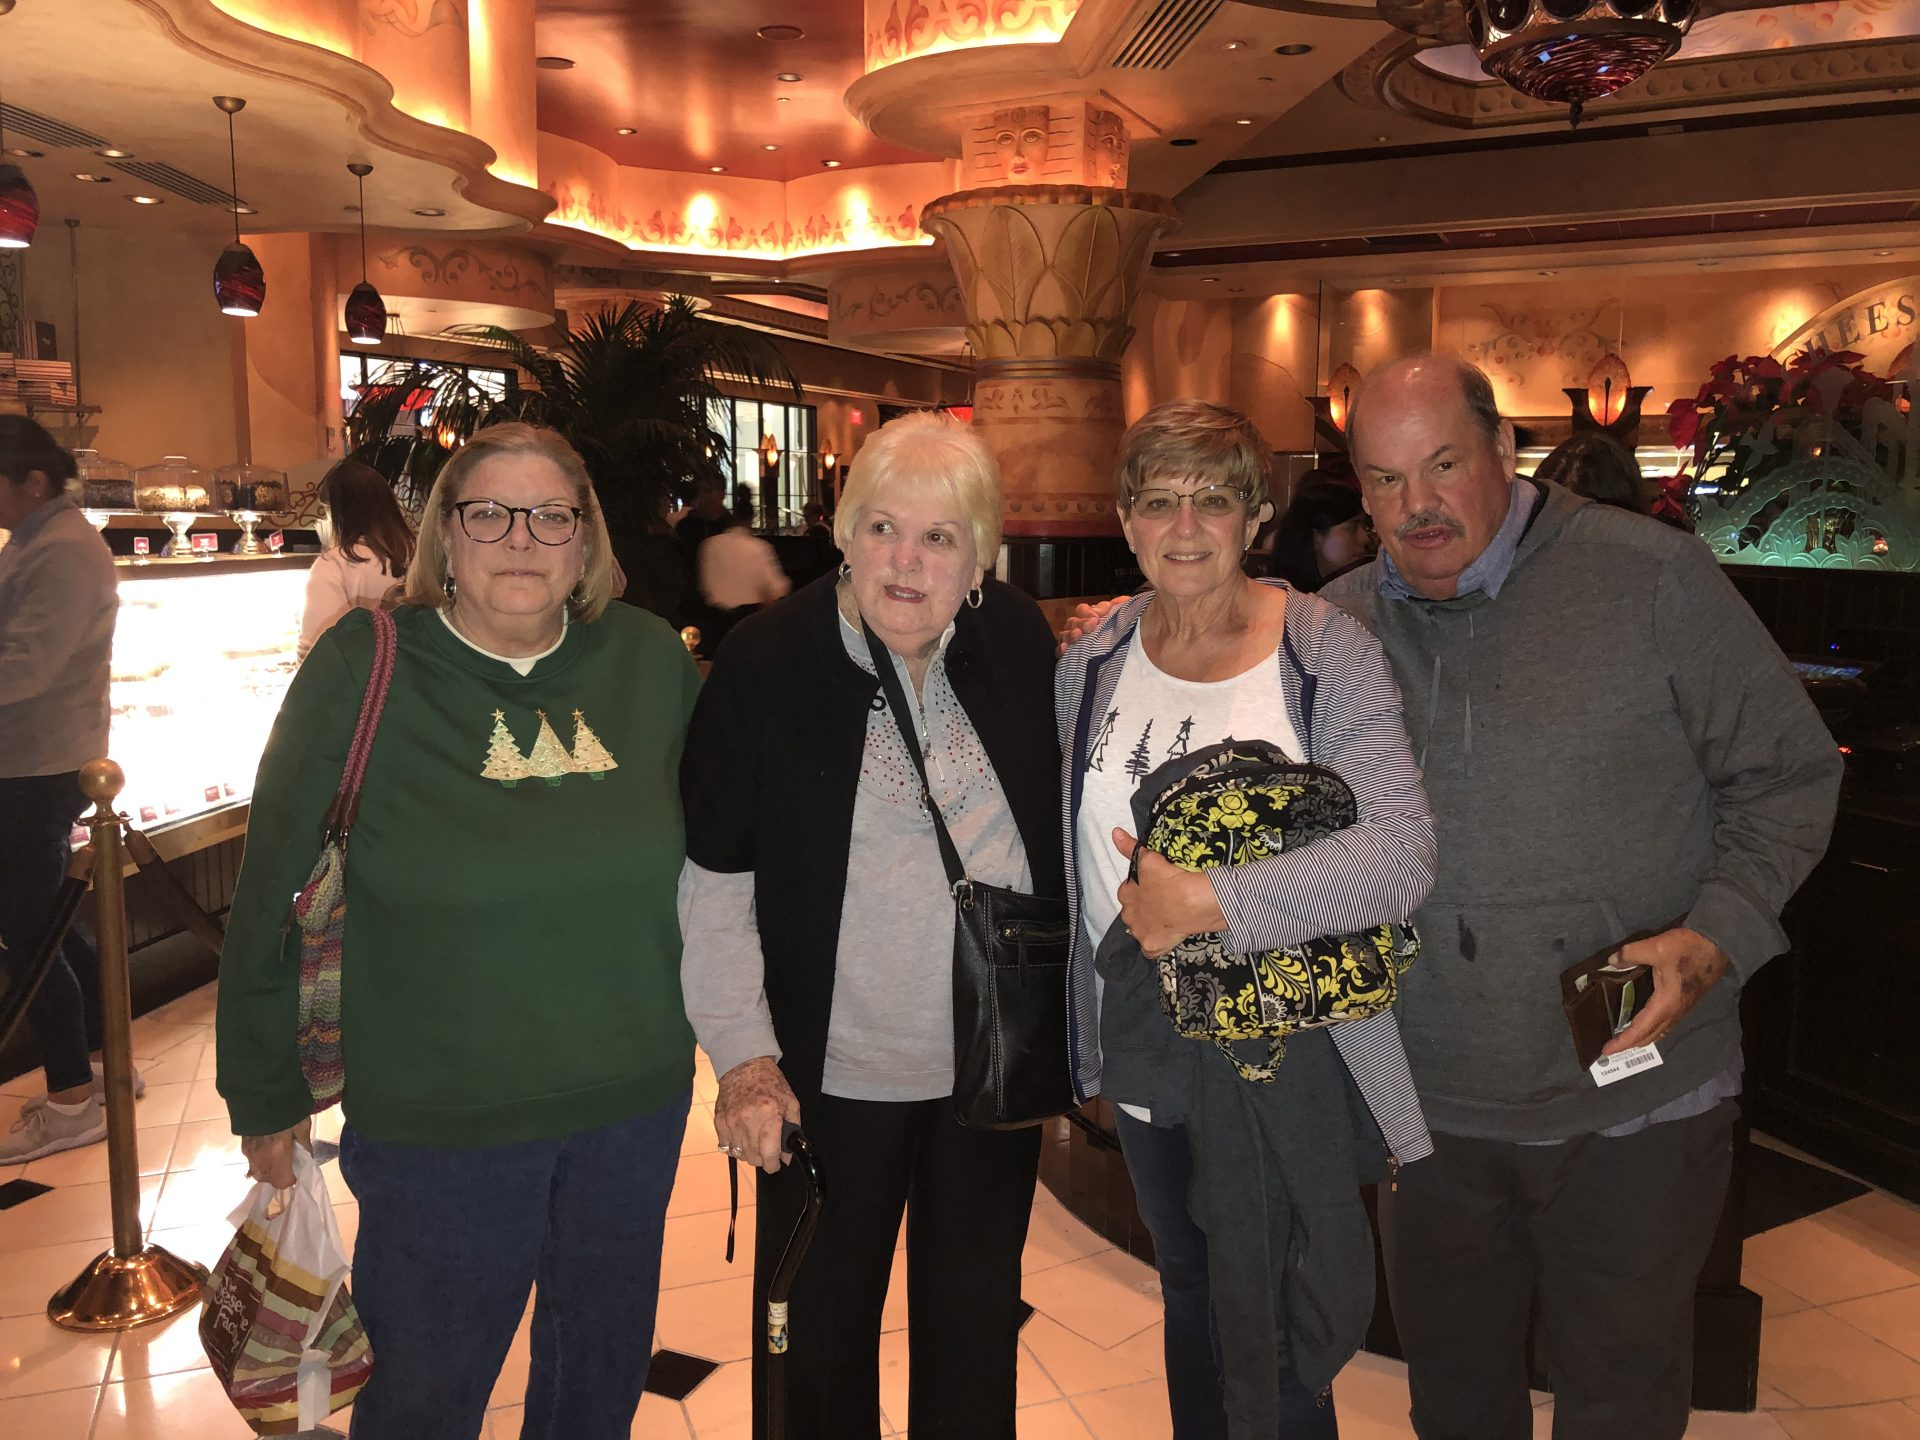 December 2019. Dinner at Cheesecake Factory. Love you, Aunt Billie❤️